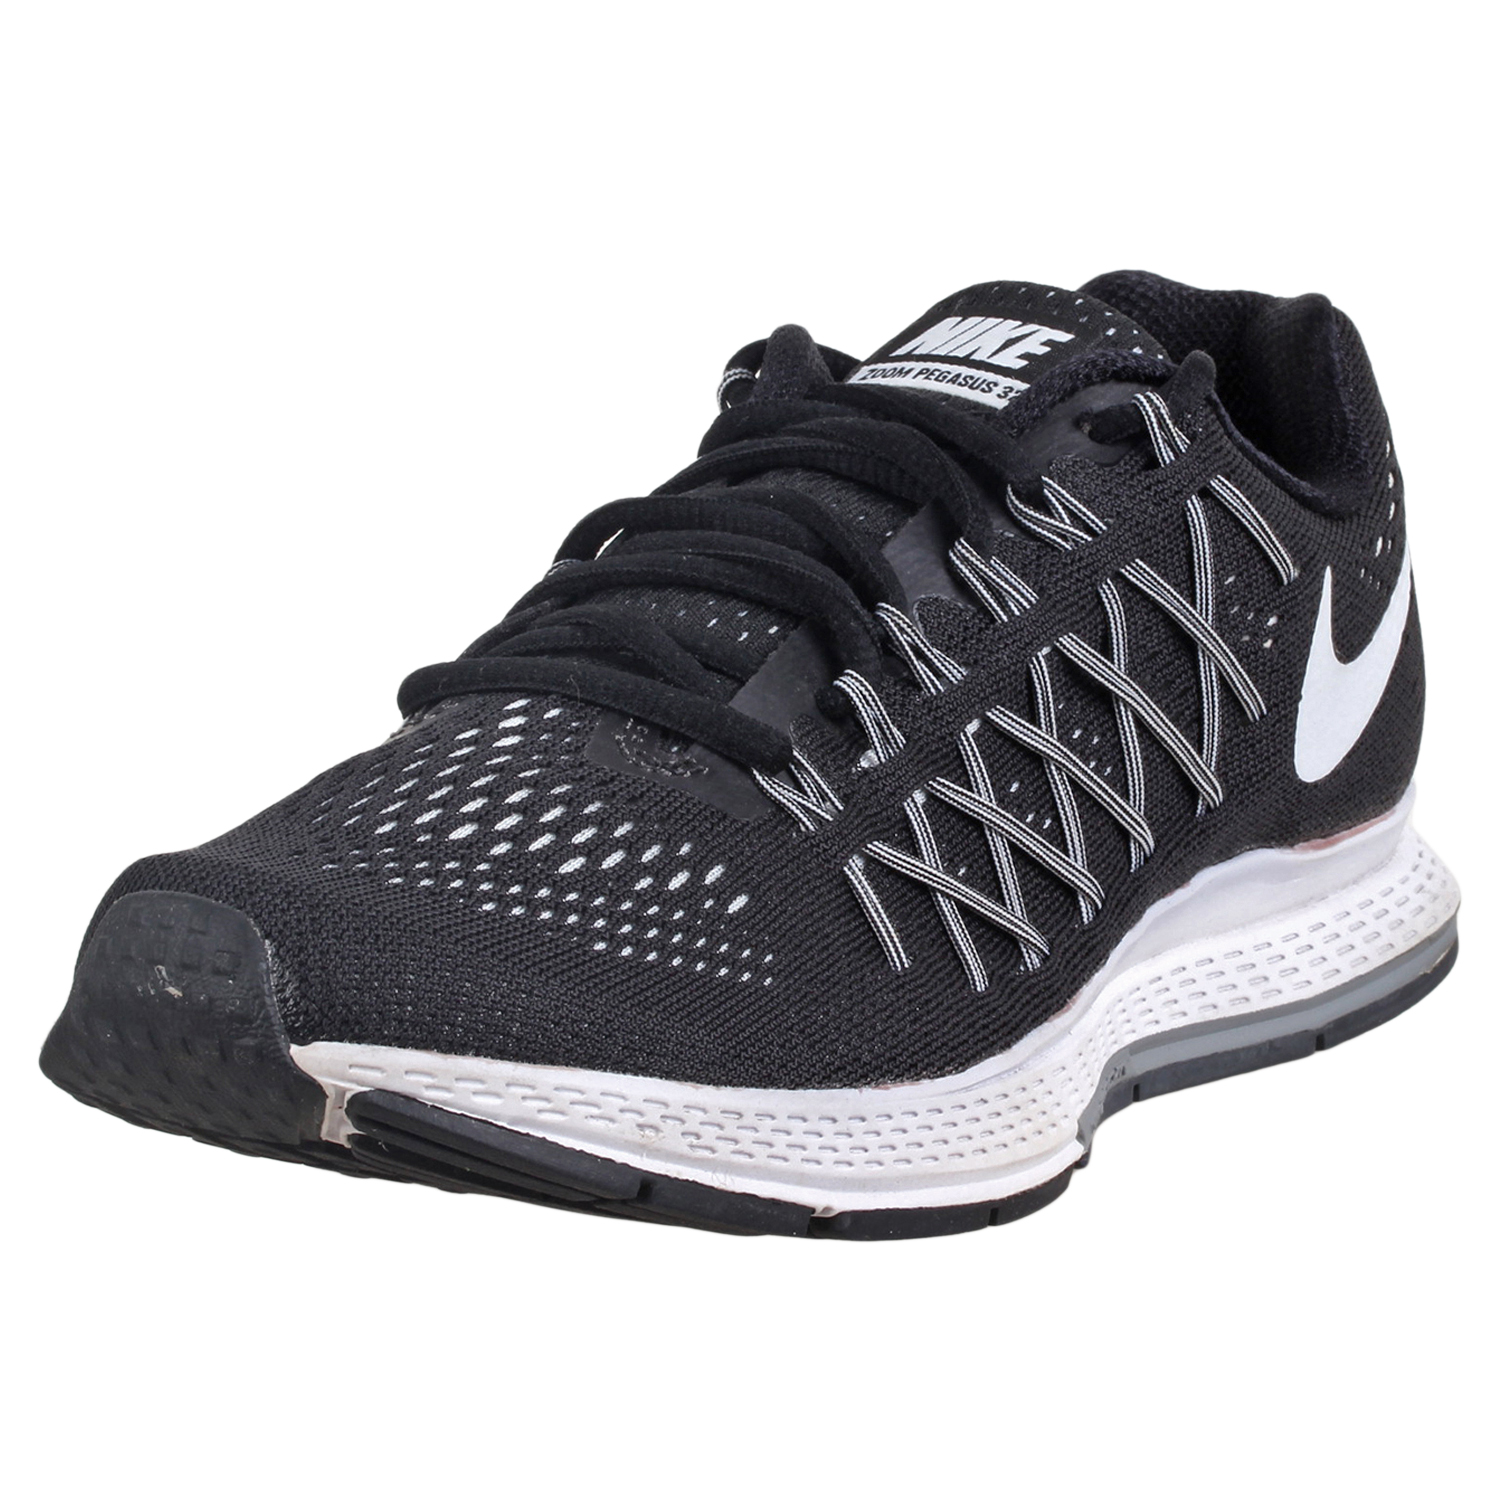 bb60c102beaf7 Details about Nike Women s Air Zoom Pegasus 32 Running Sneaker Shoes  749344-001 sz 4.5